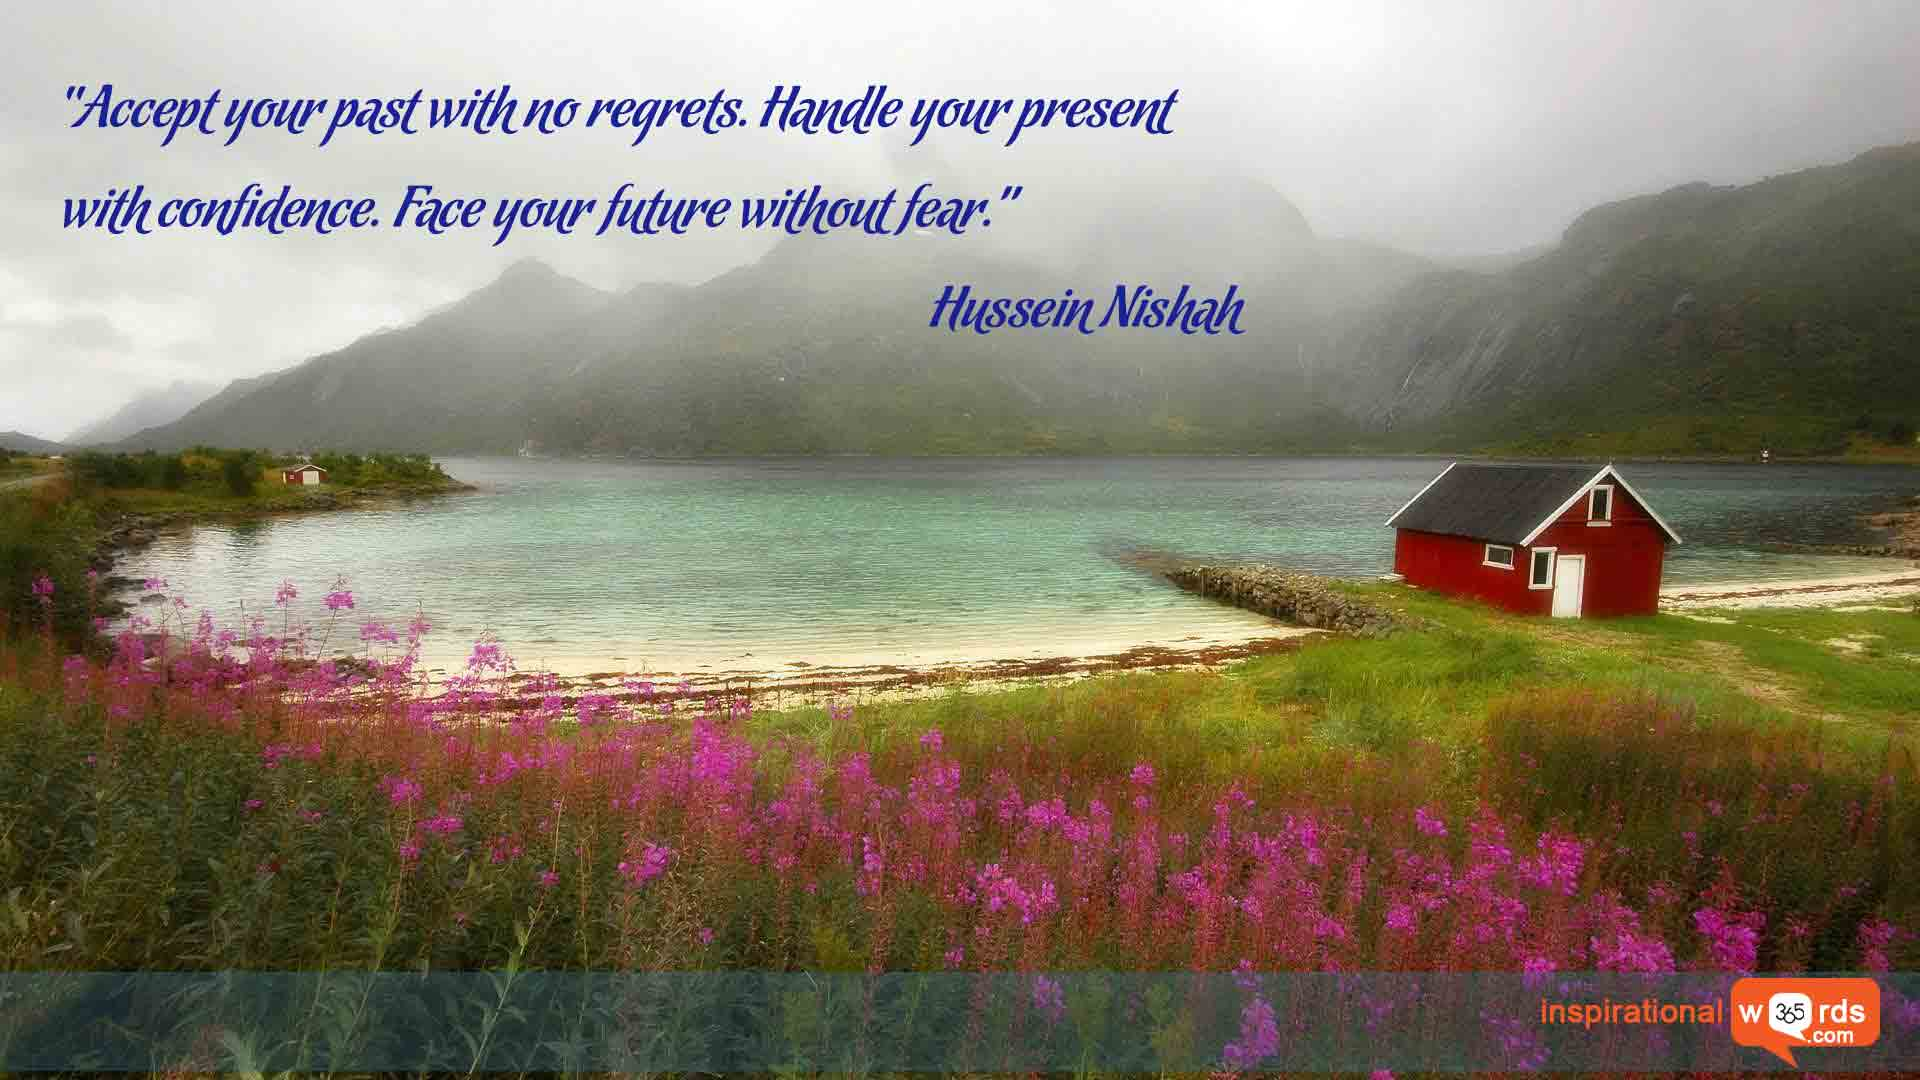 Inspirational Wallpaper Quote by Hussein Nishah